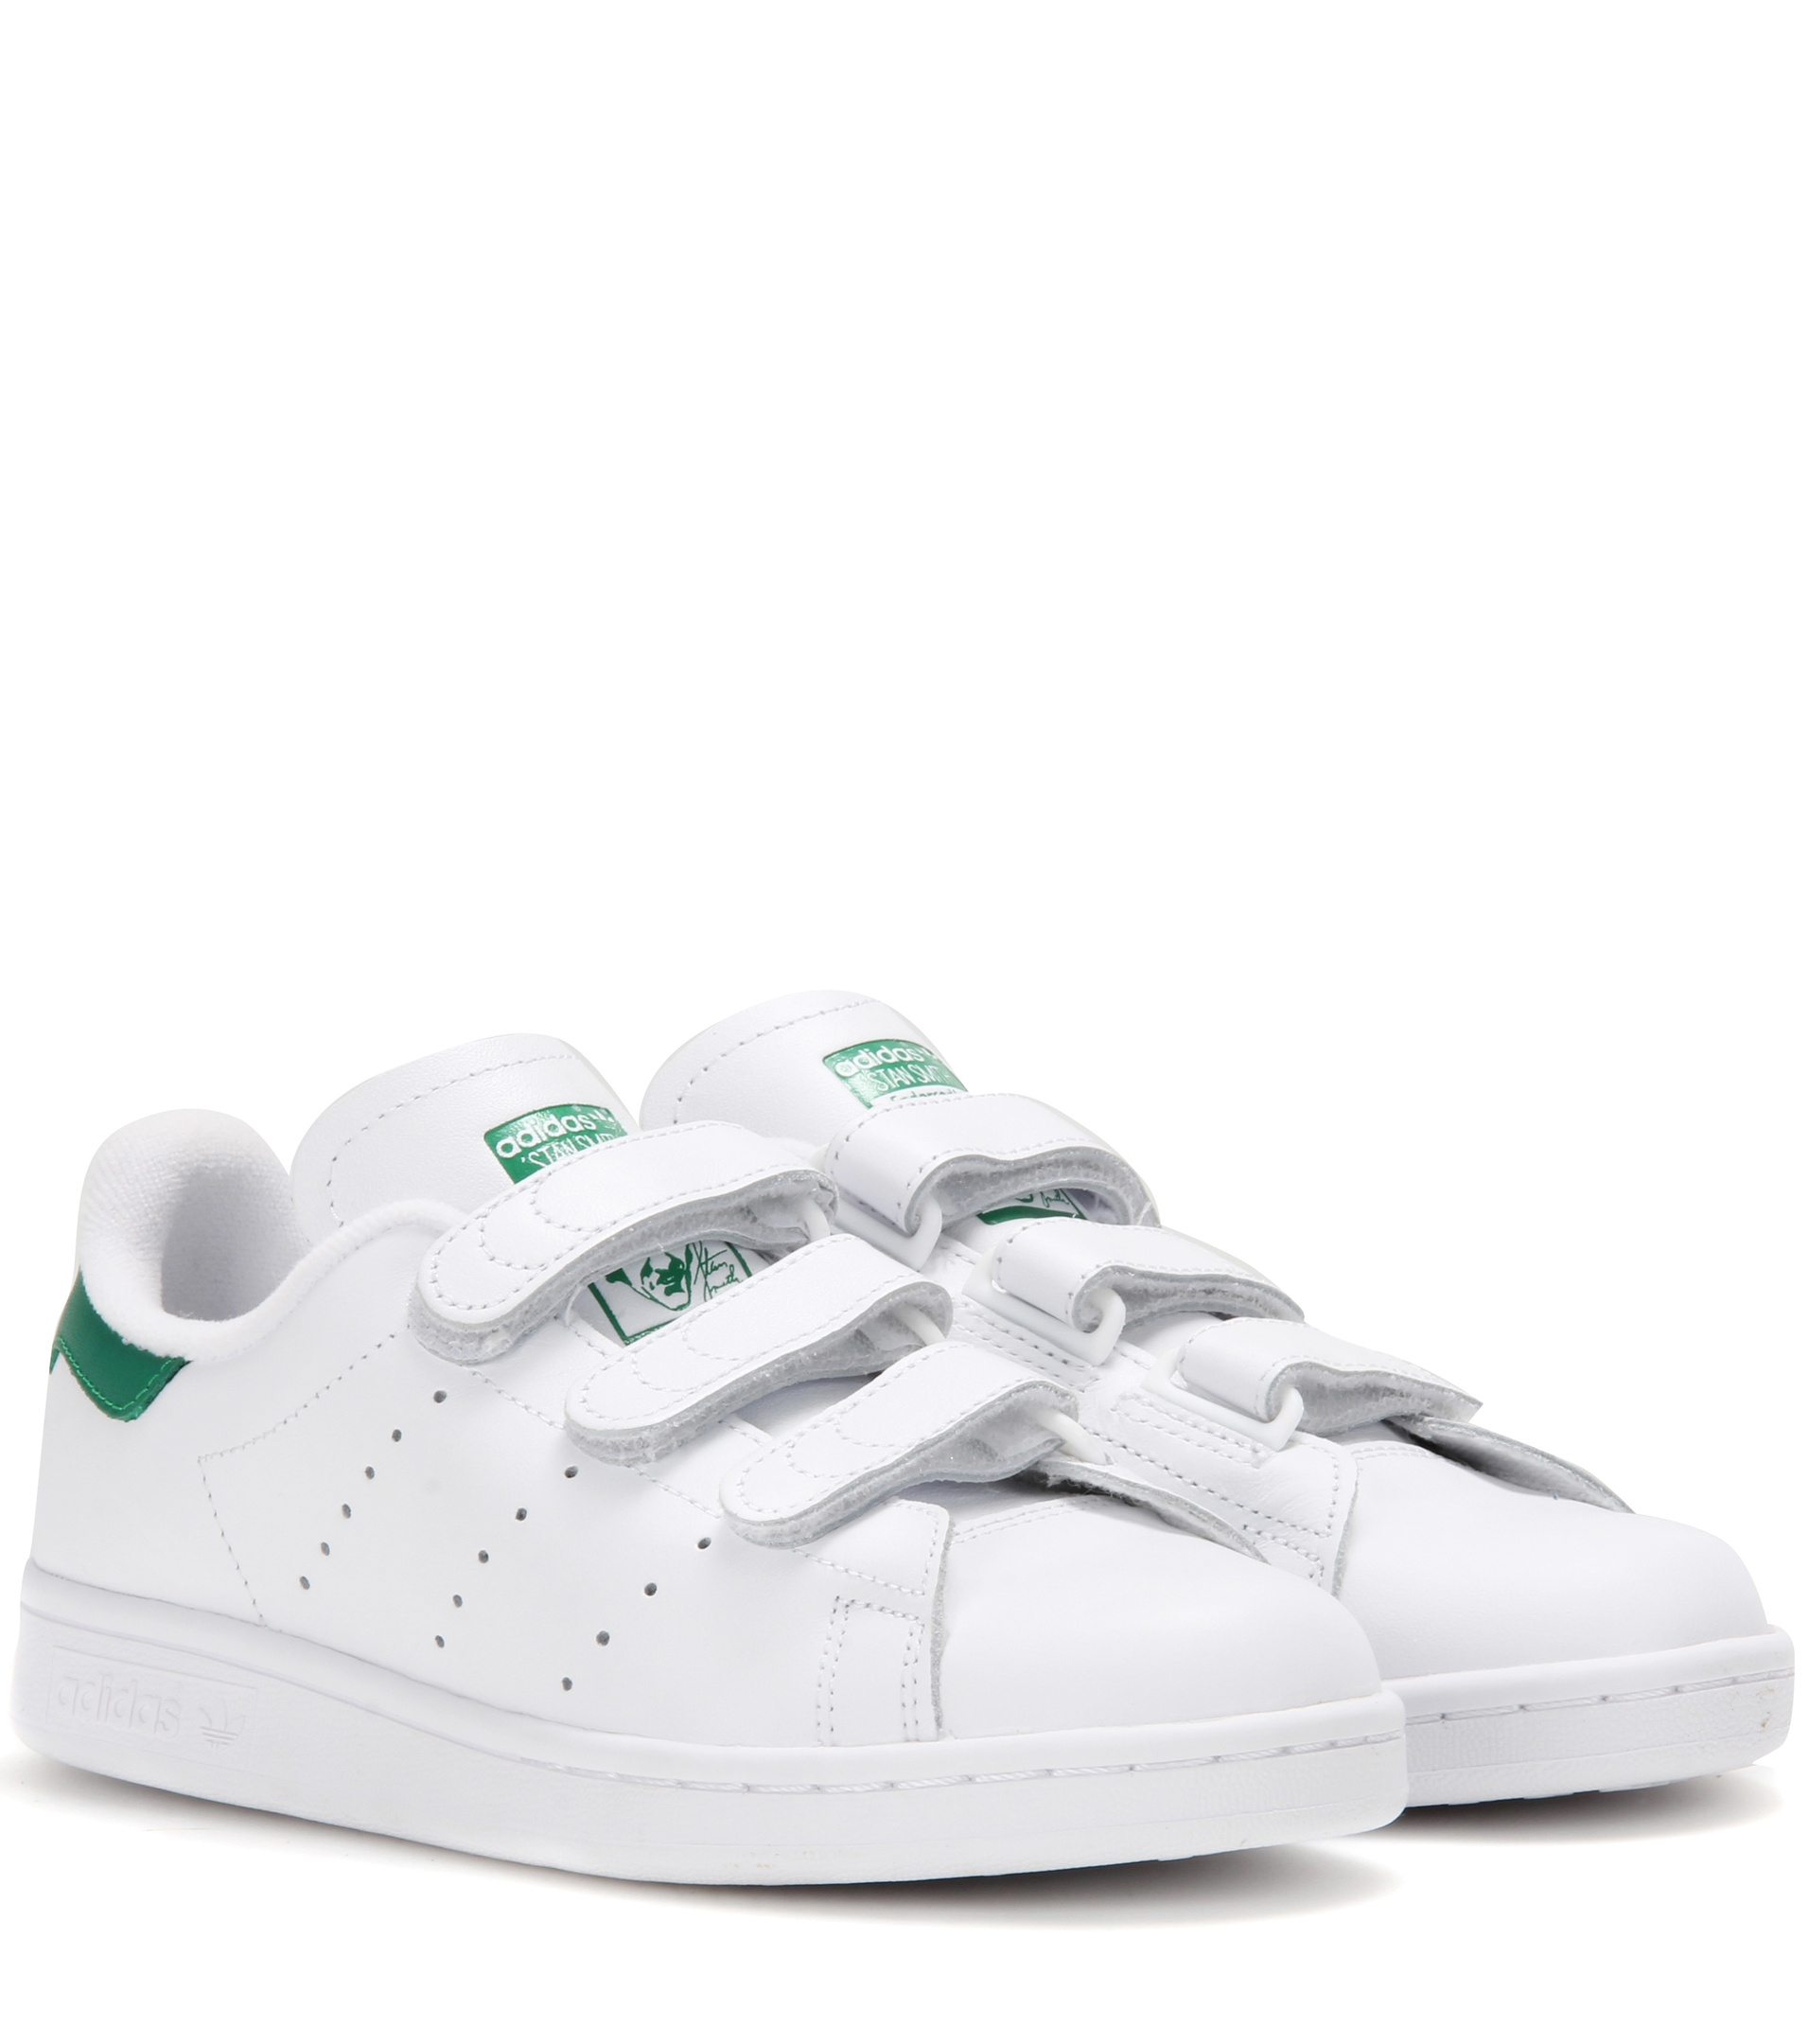 adidas Originals Leather Adidas Stan Smith - Hook & Loo in Green 22-26.5 (White)